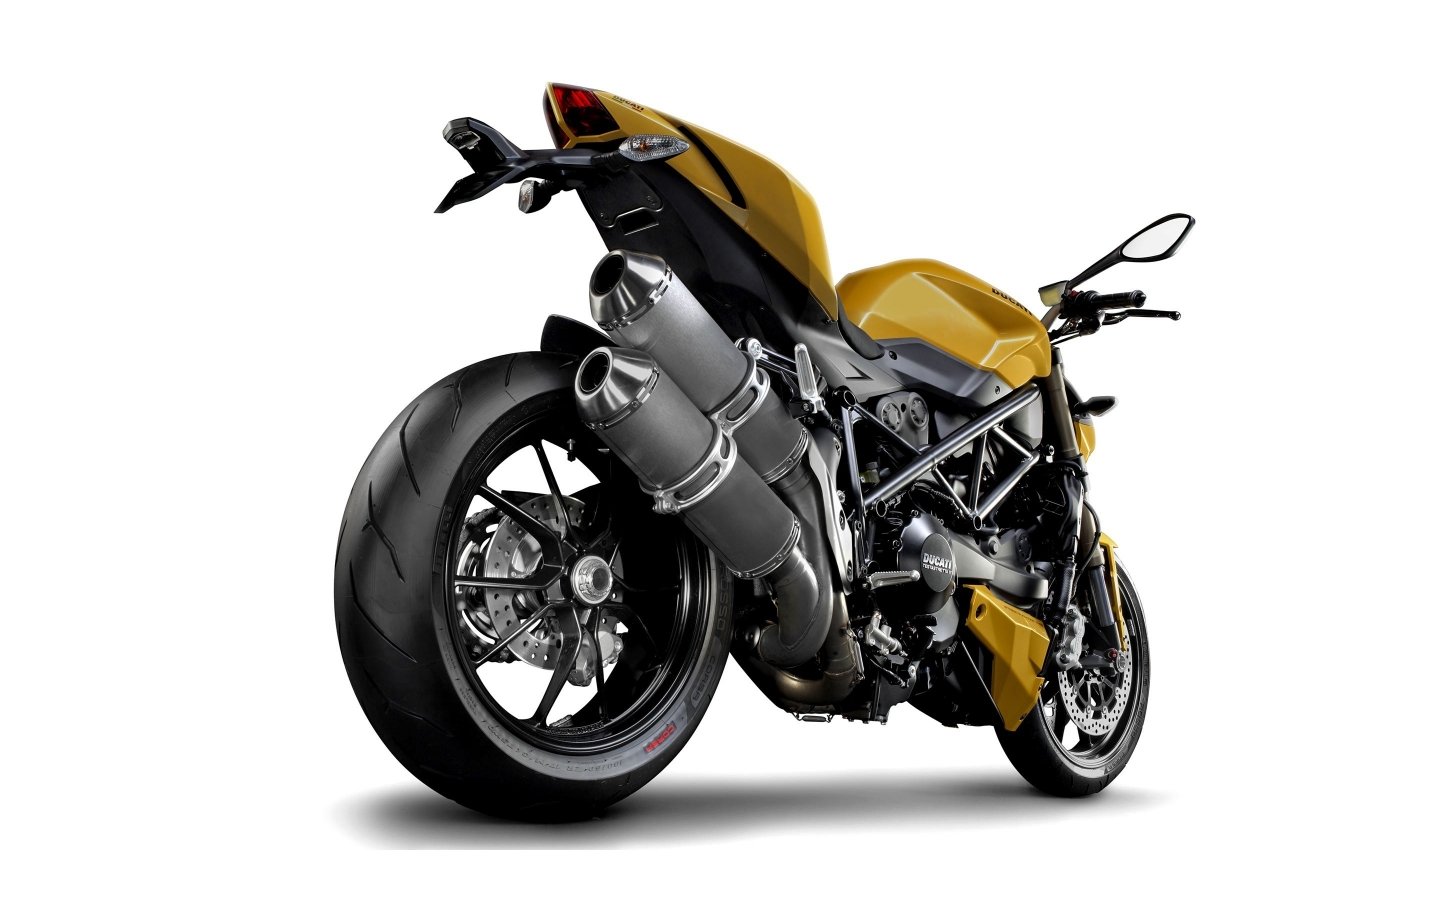 Ducati Streetfighter Rear for 1440 x 900 widescreen resolution